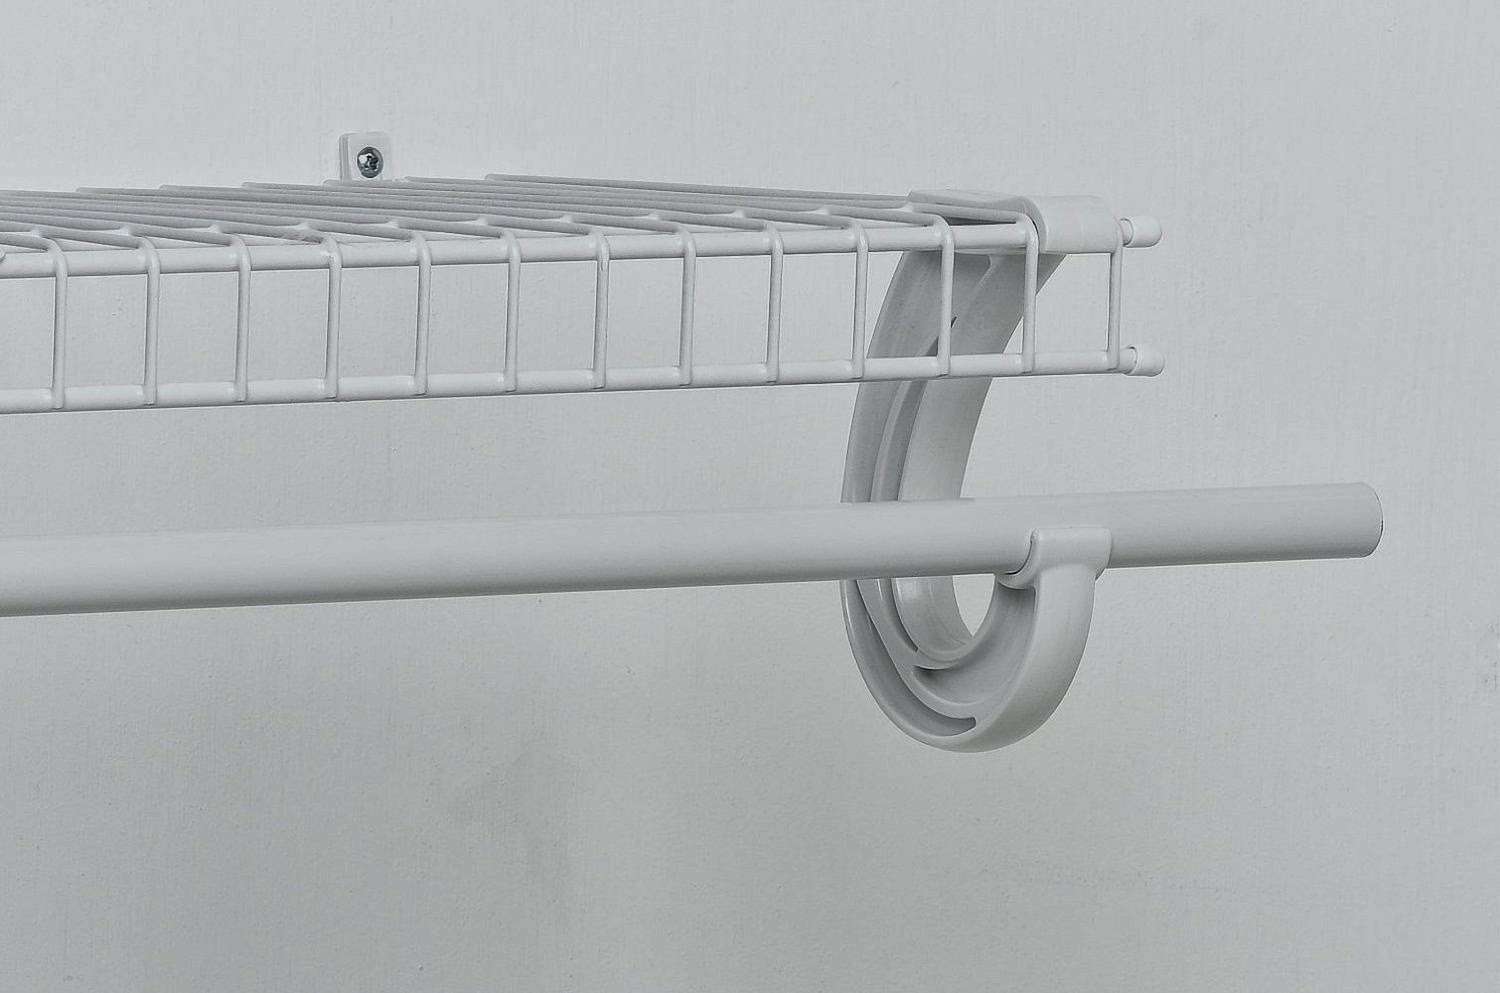 White Closet Maid Support For Super Slide Hanging Bar